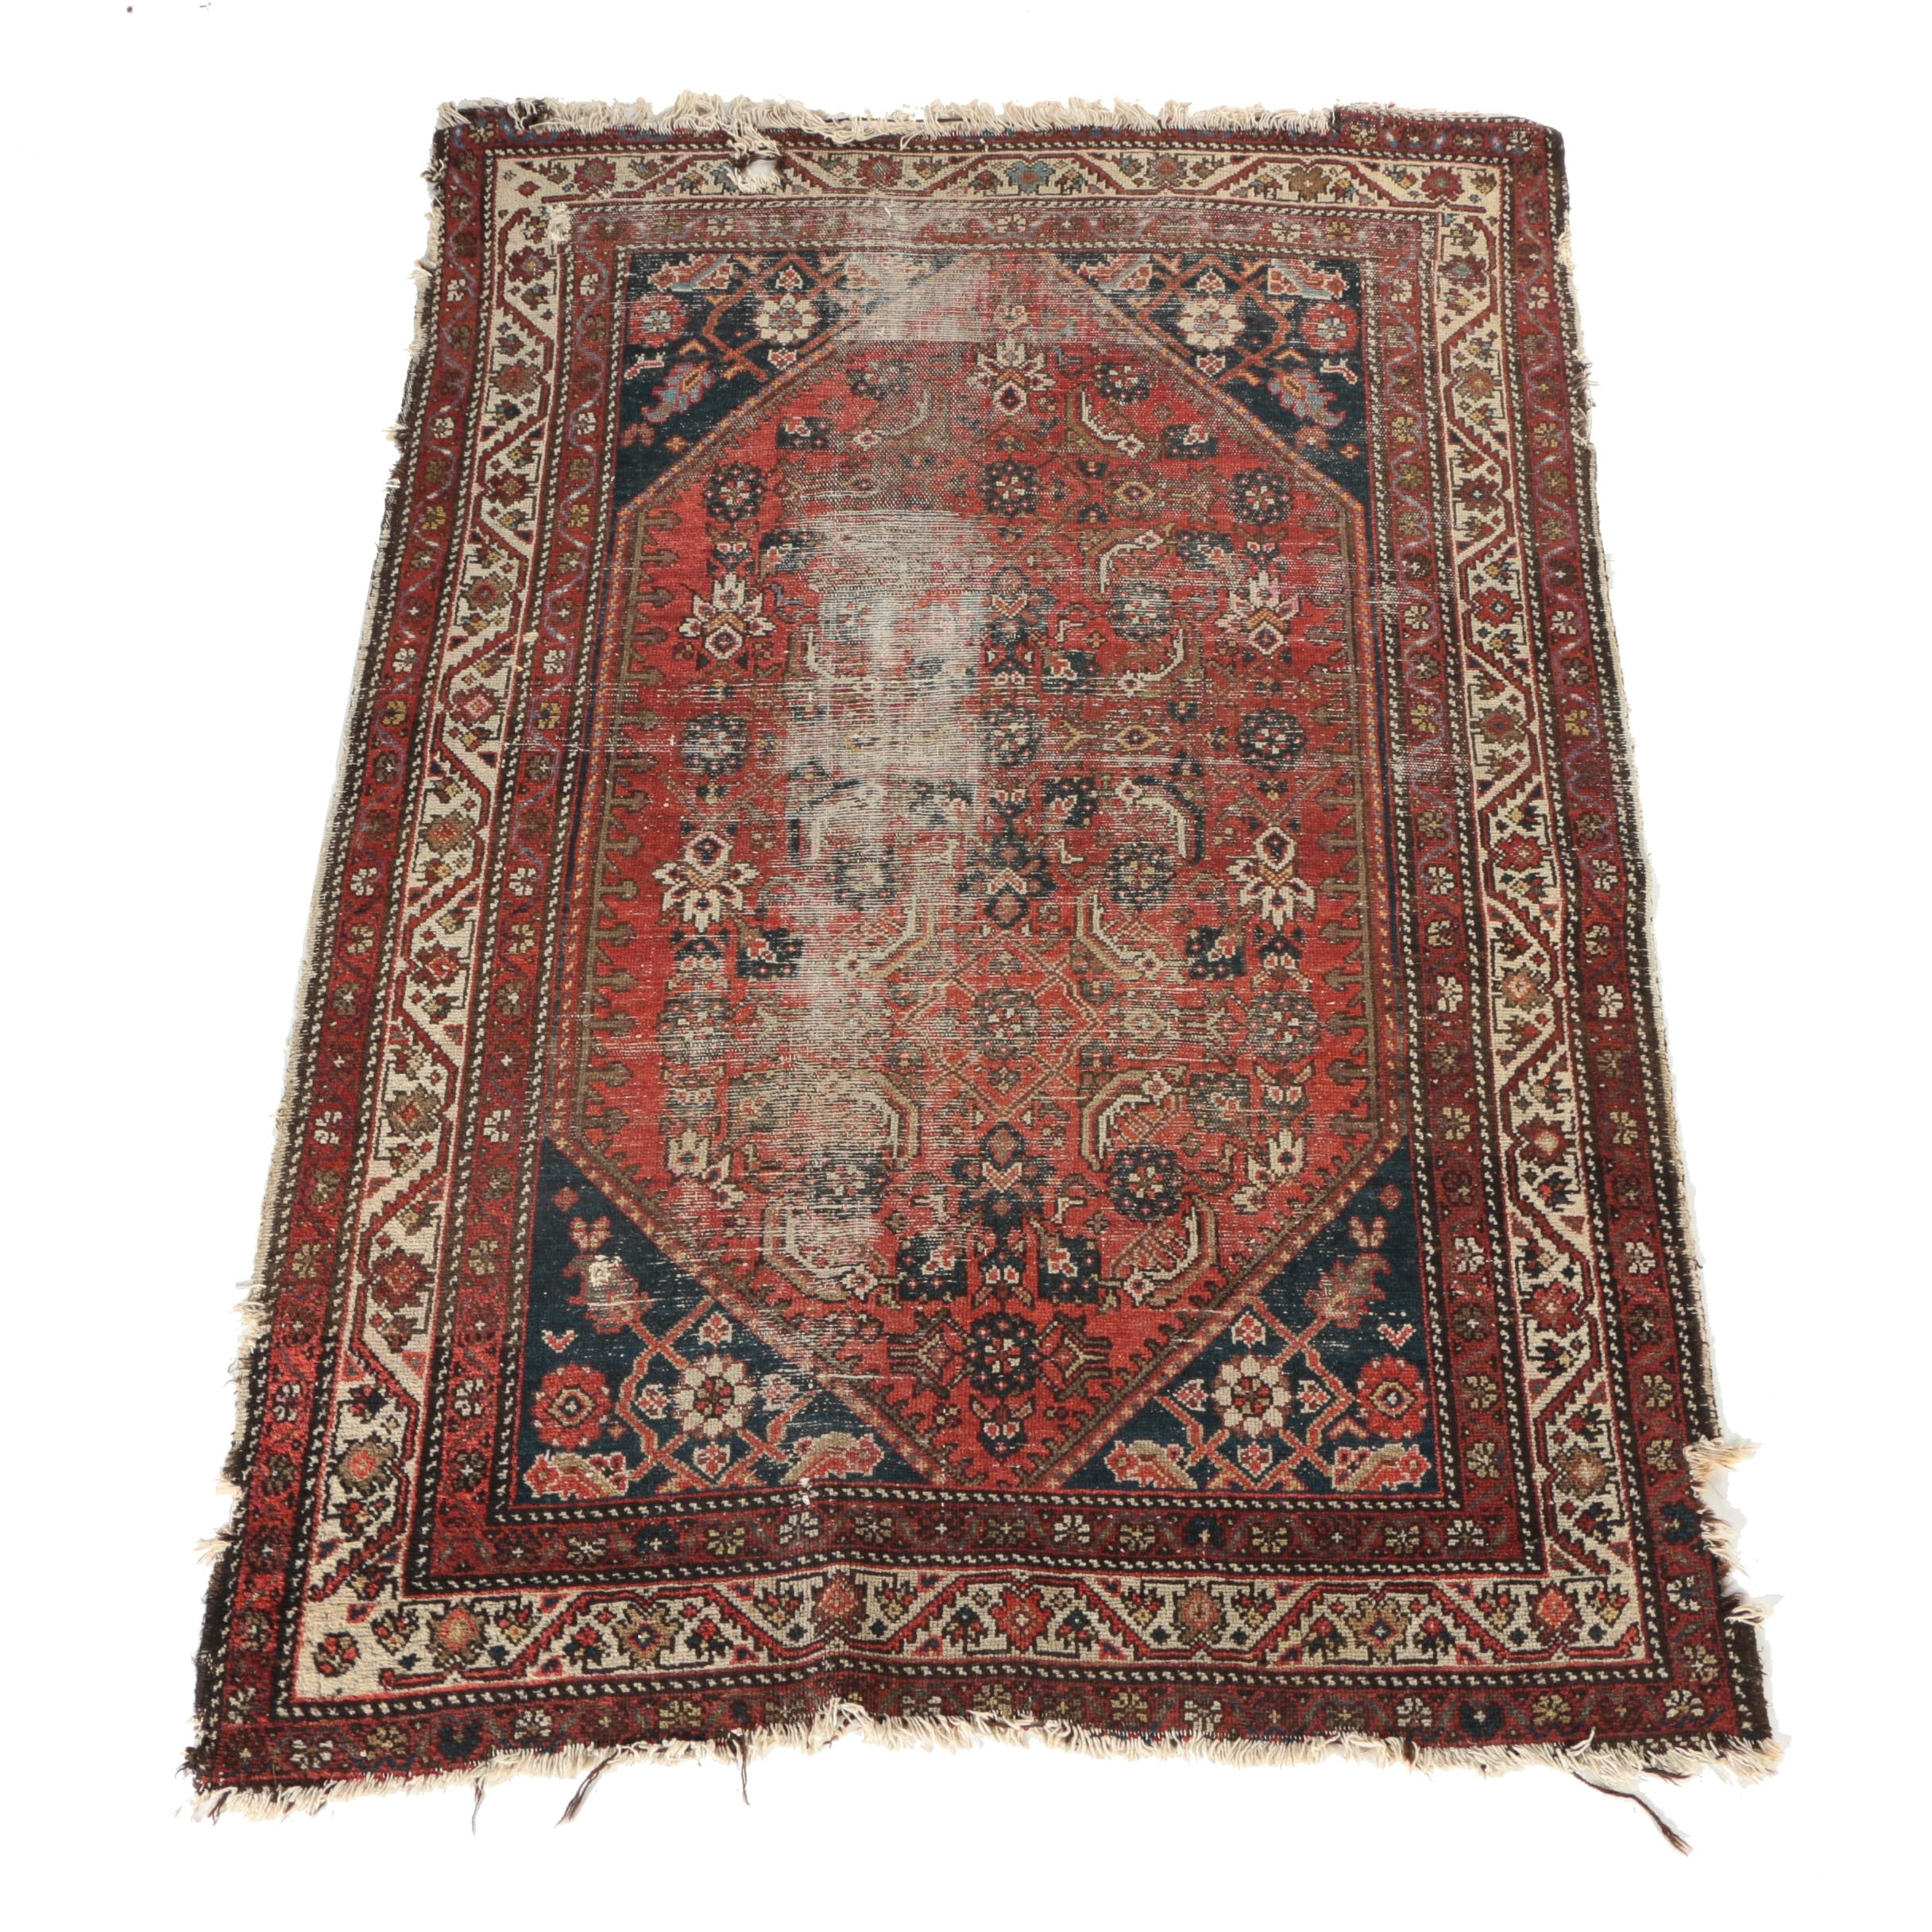 Antique Hand-Knotted Persian Bijar Area Rug